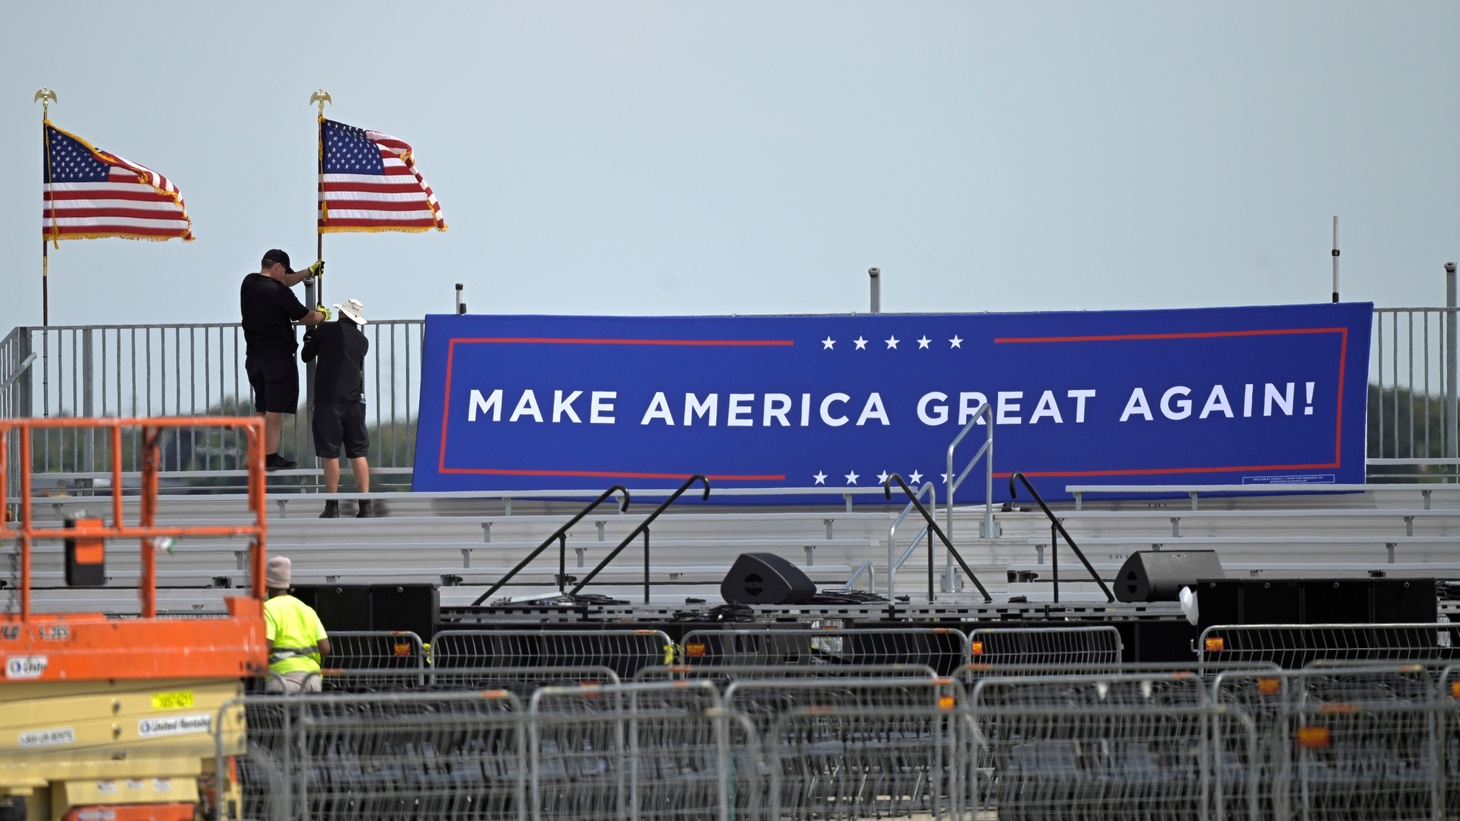 Donald Trump's campaign rally was scheduled for today at the Orlando Sanford International Airport in Sanford, Florida. But following Trump's announcement that he tested positive for COVID-19, workers are pulling down a sign at the rally location. October 2, 2020.